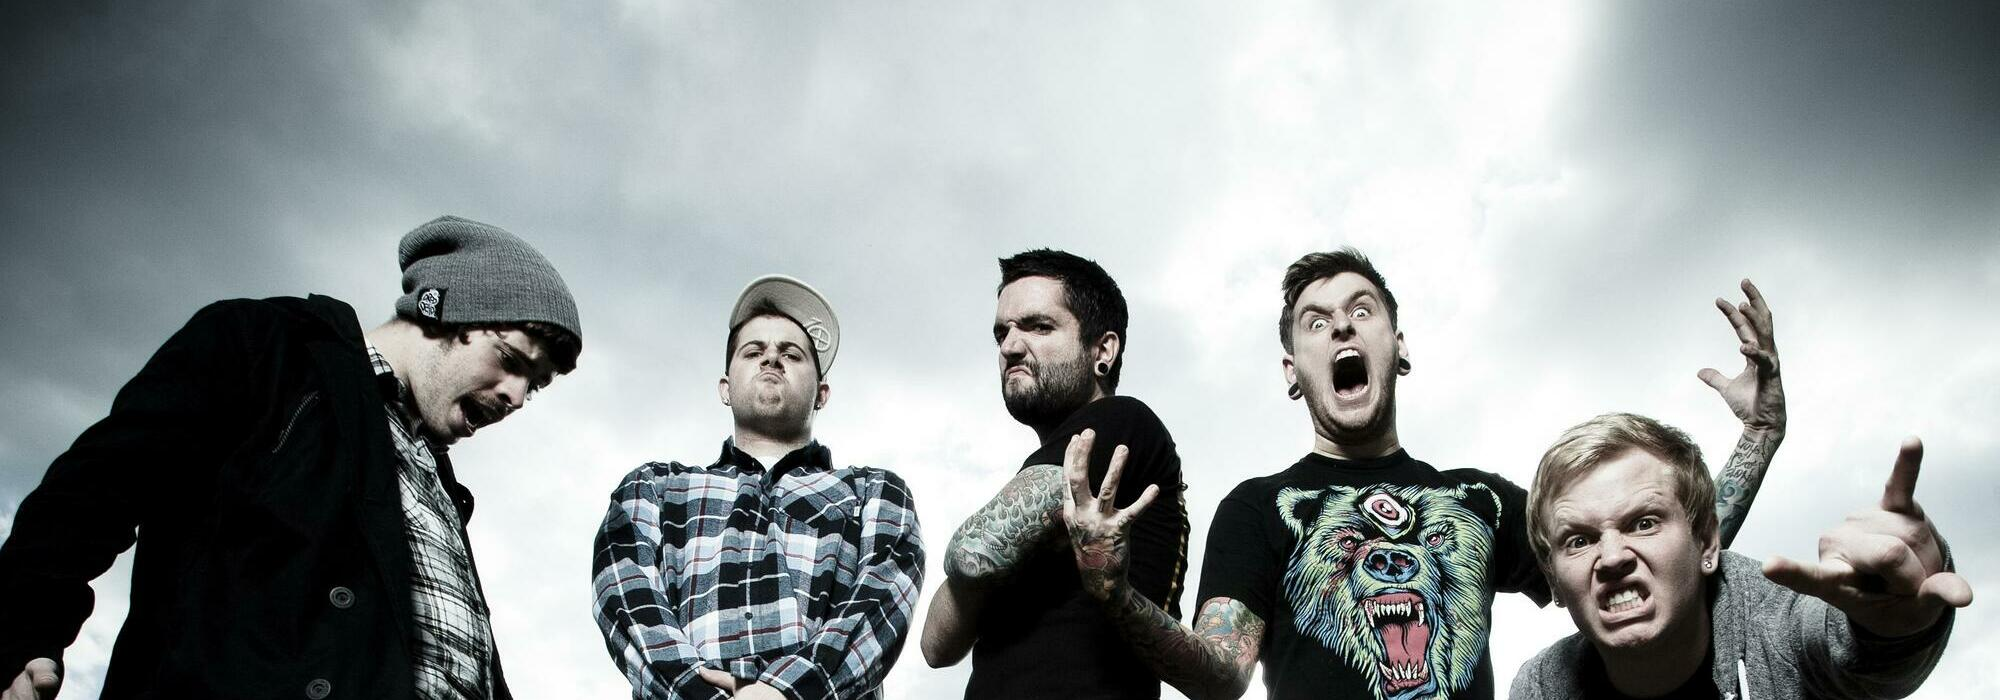 A A Day To Remember live event